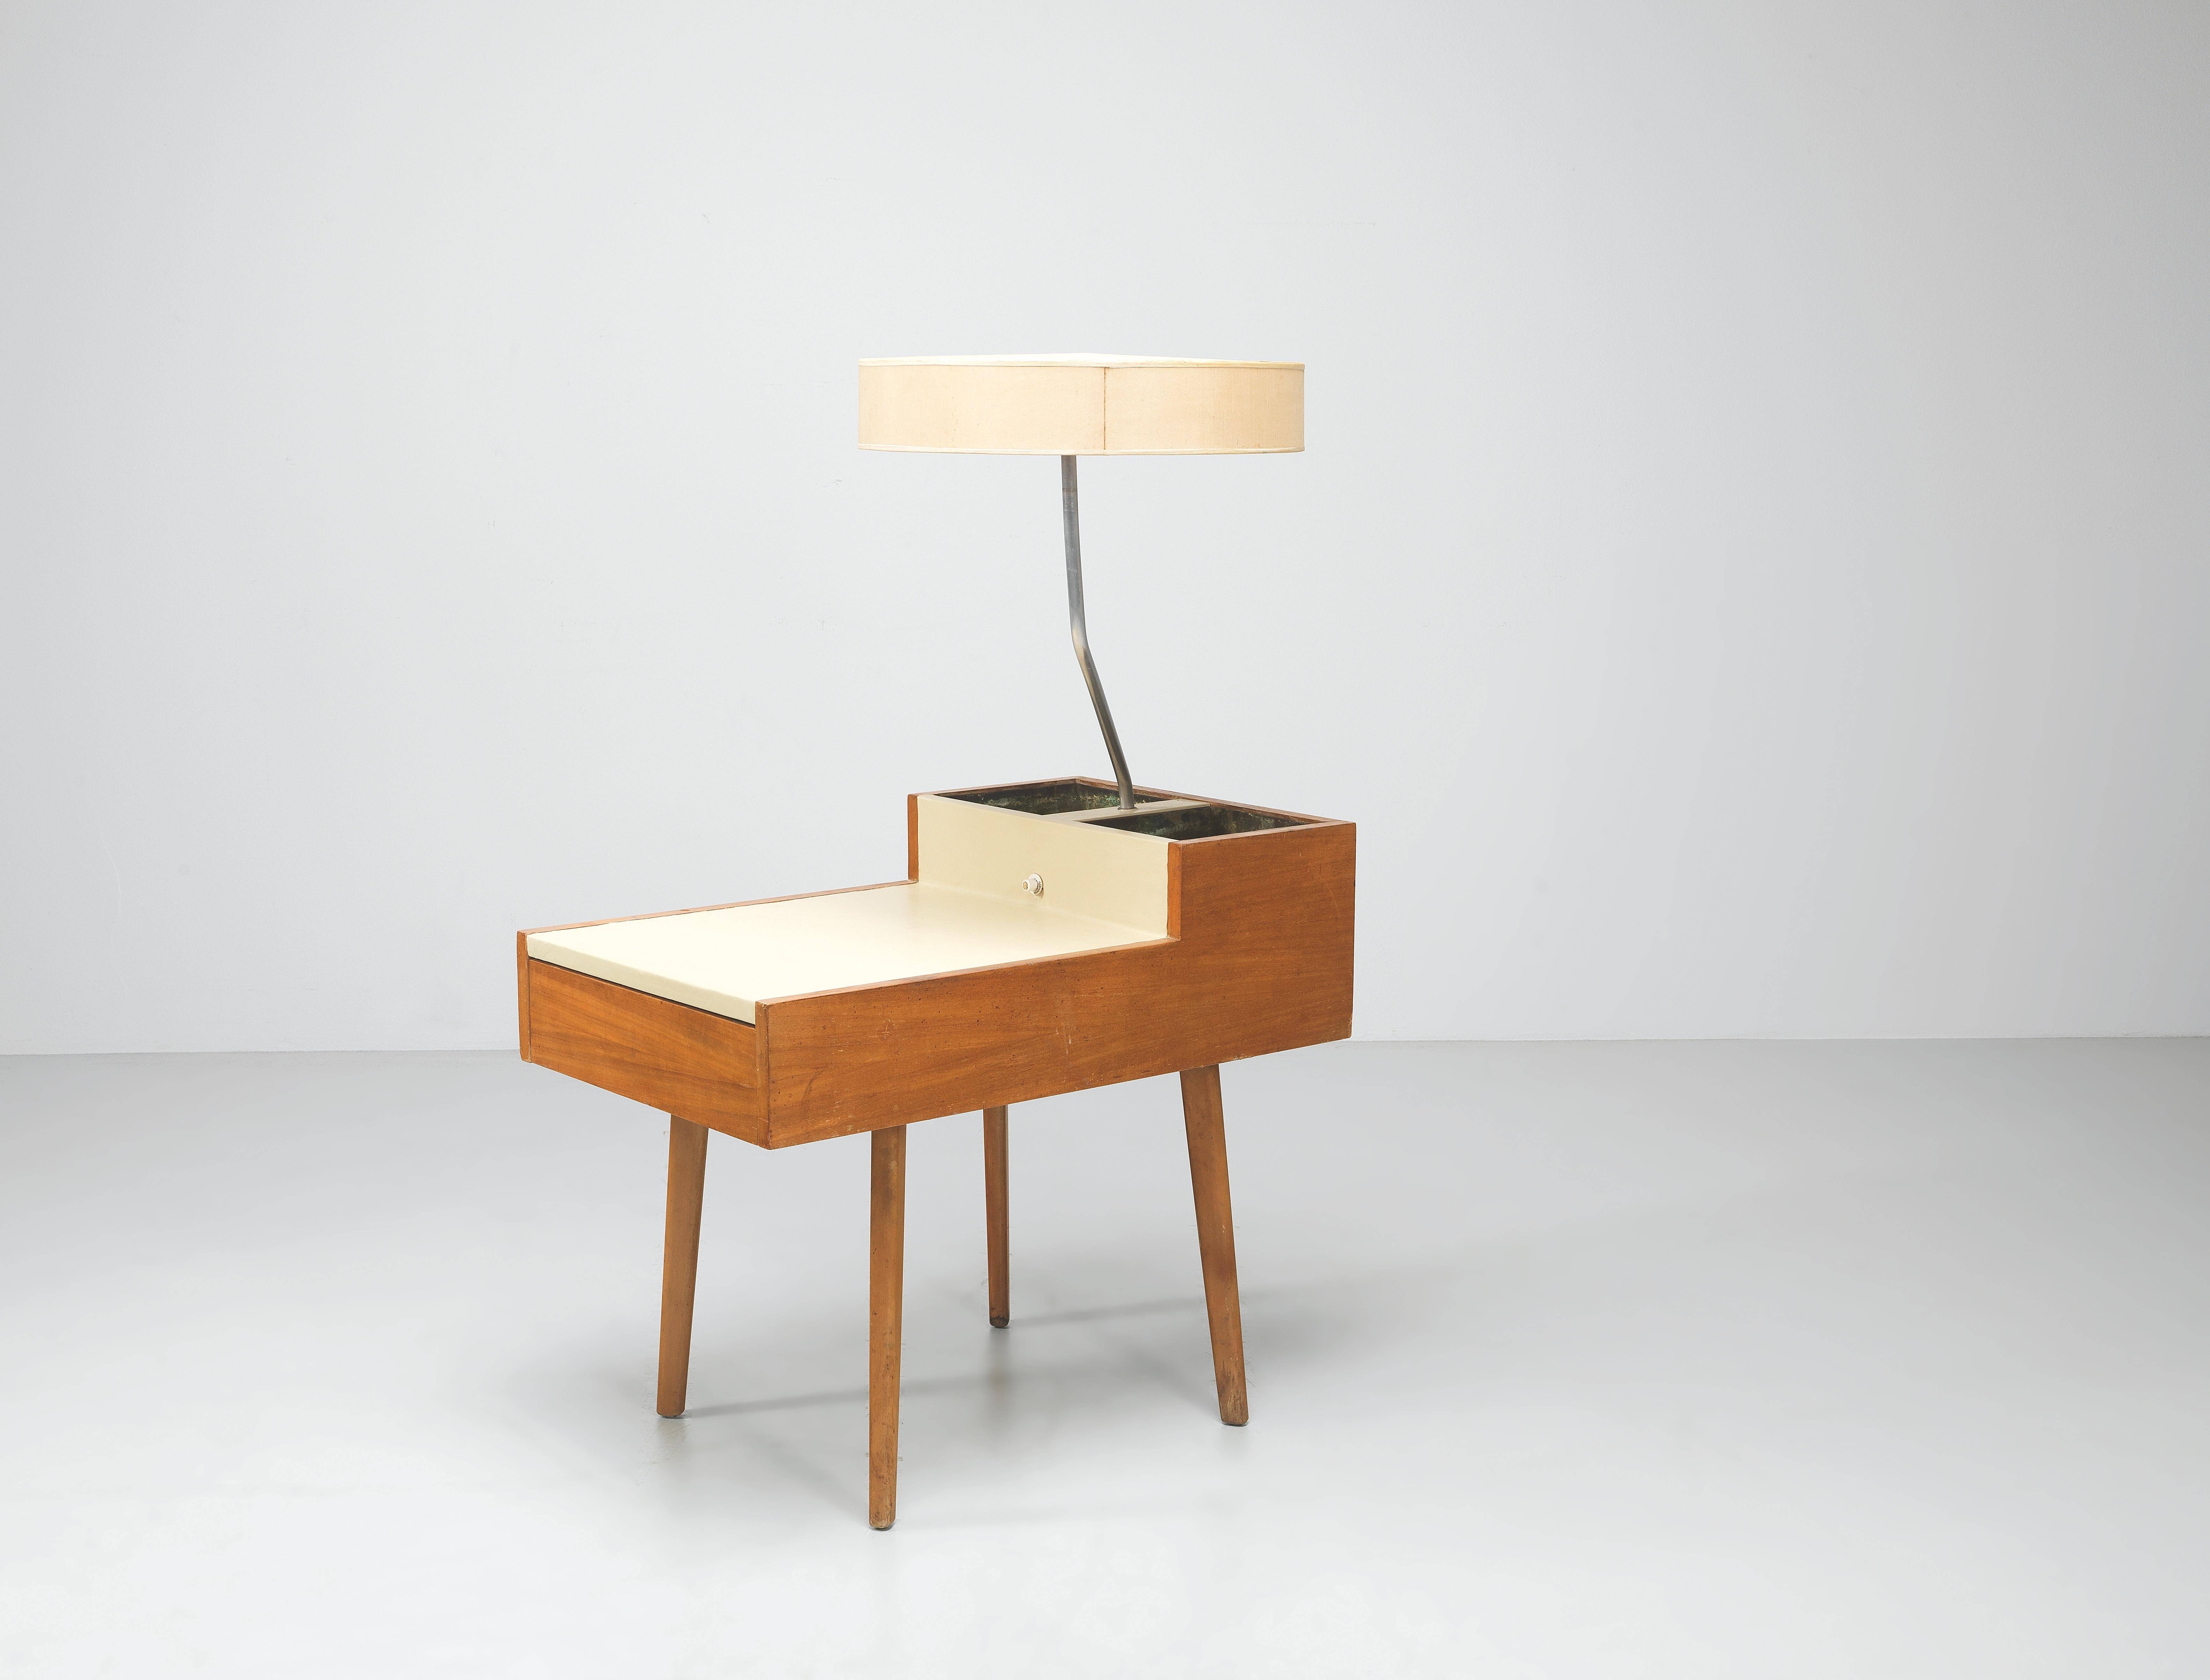 A Bedside Table Side Table With Integrated Table Lamp Mod No 4634 L Designed By George Nelson Design 2020 10 07 Estimate Eur 2 000 To Eur 3 000 Dorotheum